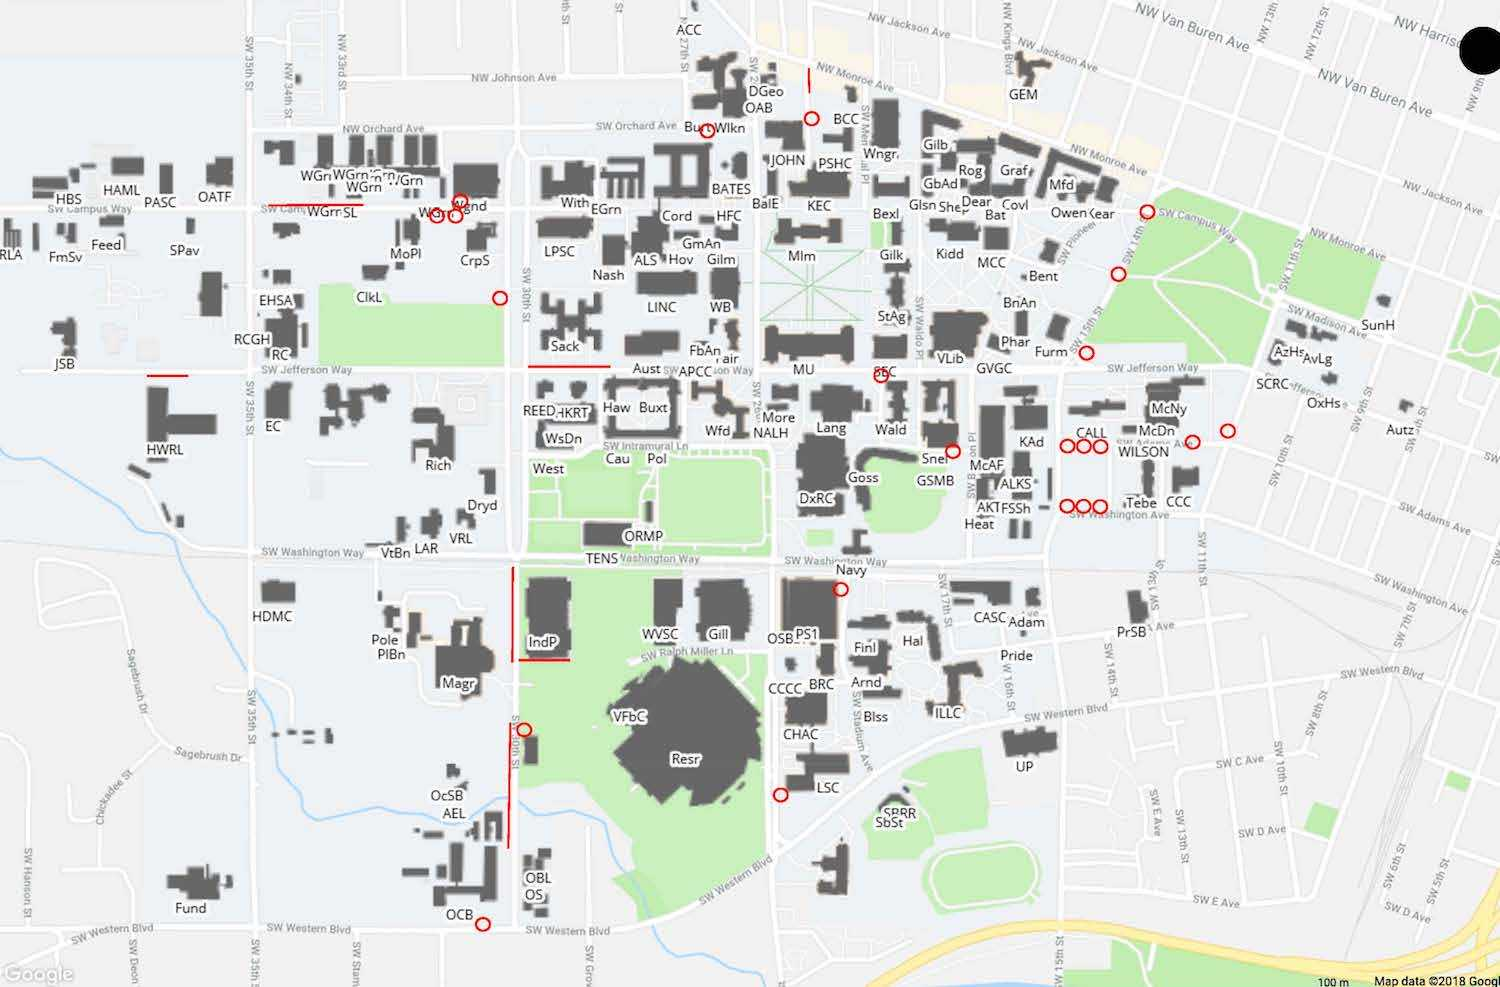 Path of travel updates across the Corvallis campus